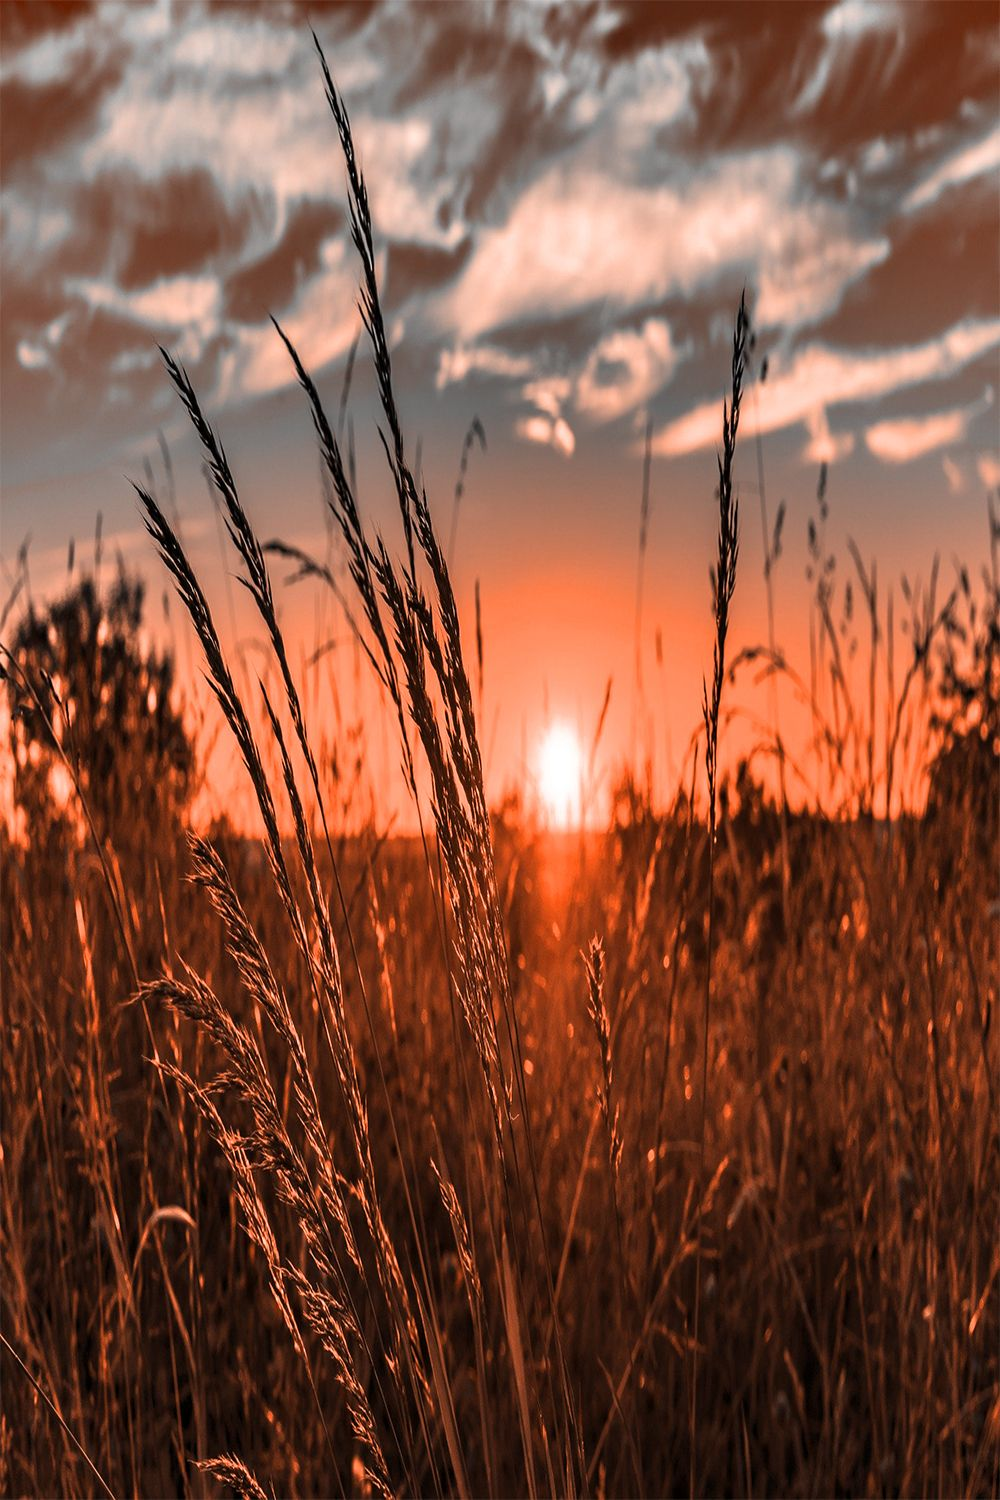 Sunset Wallpaper Sunset wallpaper Western photography Country 1000x1500